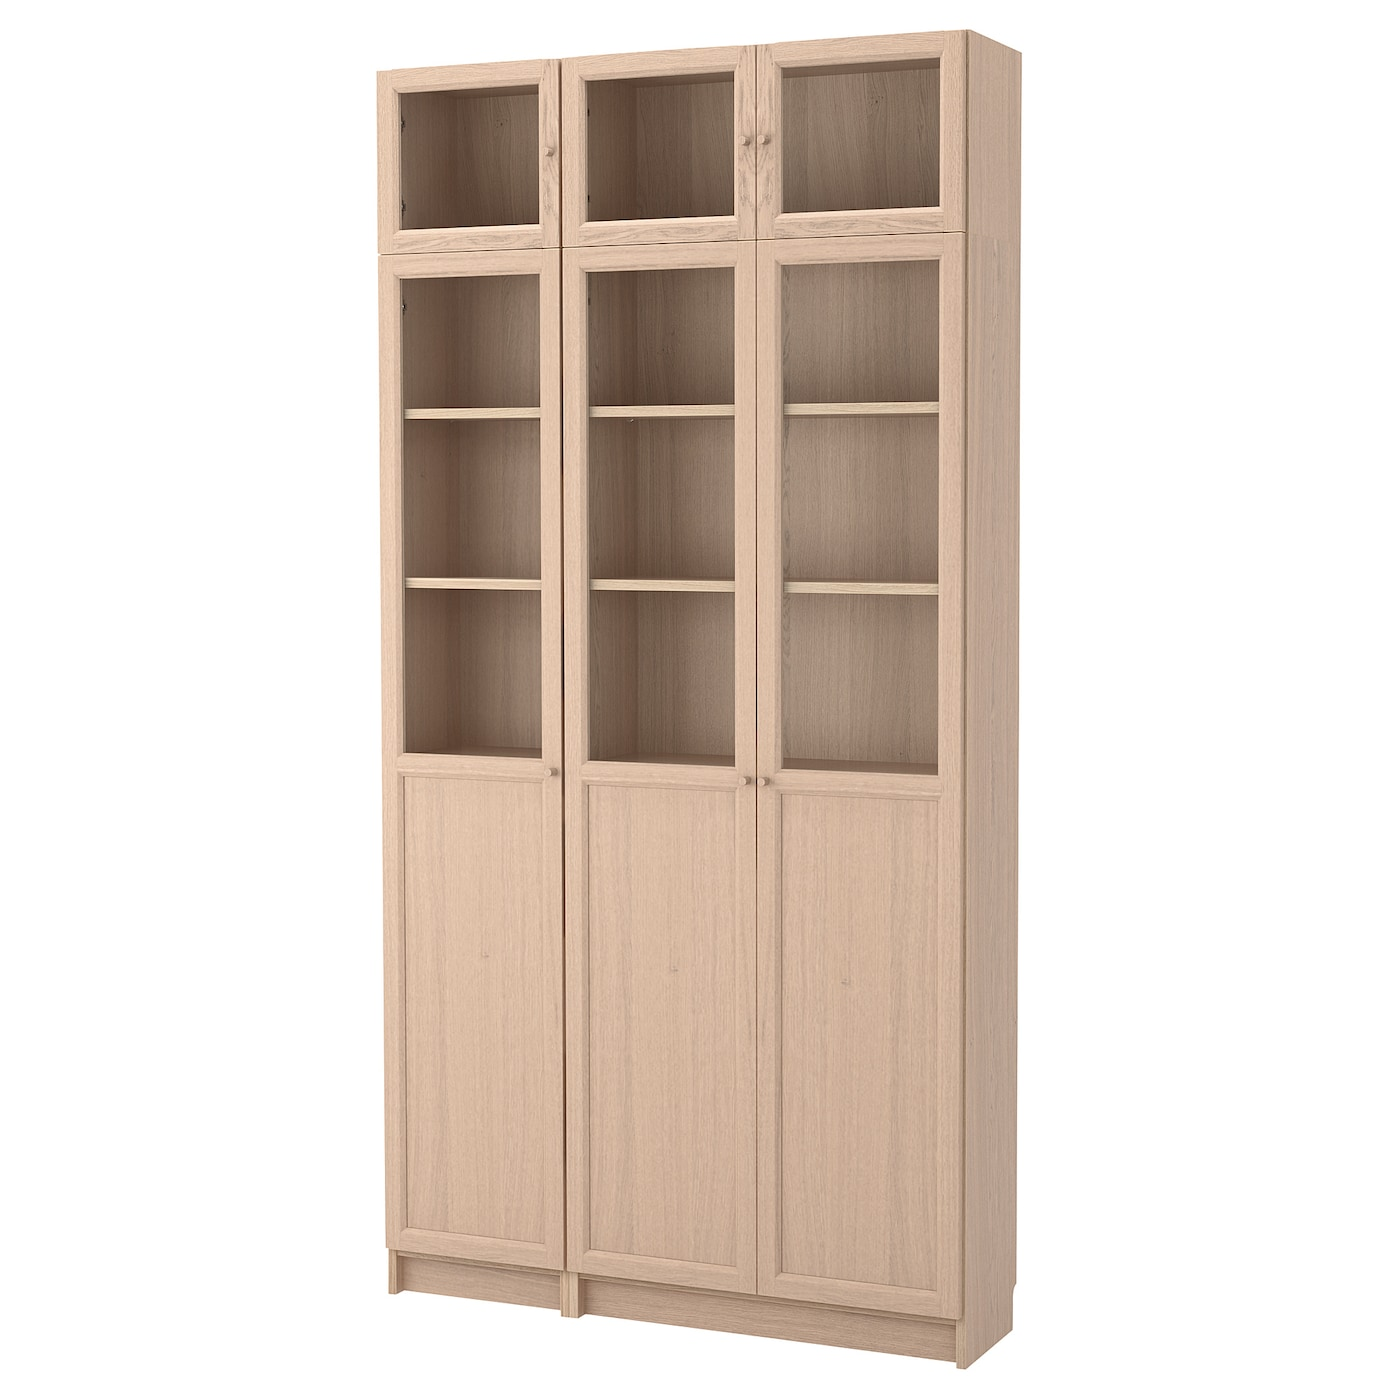 and shaker in amish by on co sterling bookcase glass simply bottom top slam frgesywjortv wood wide doors products